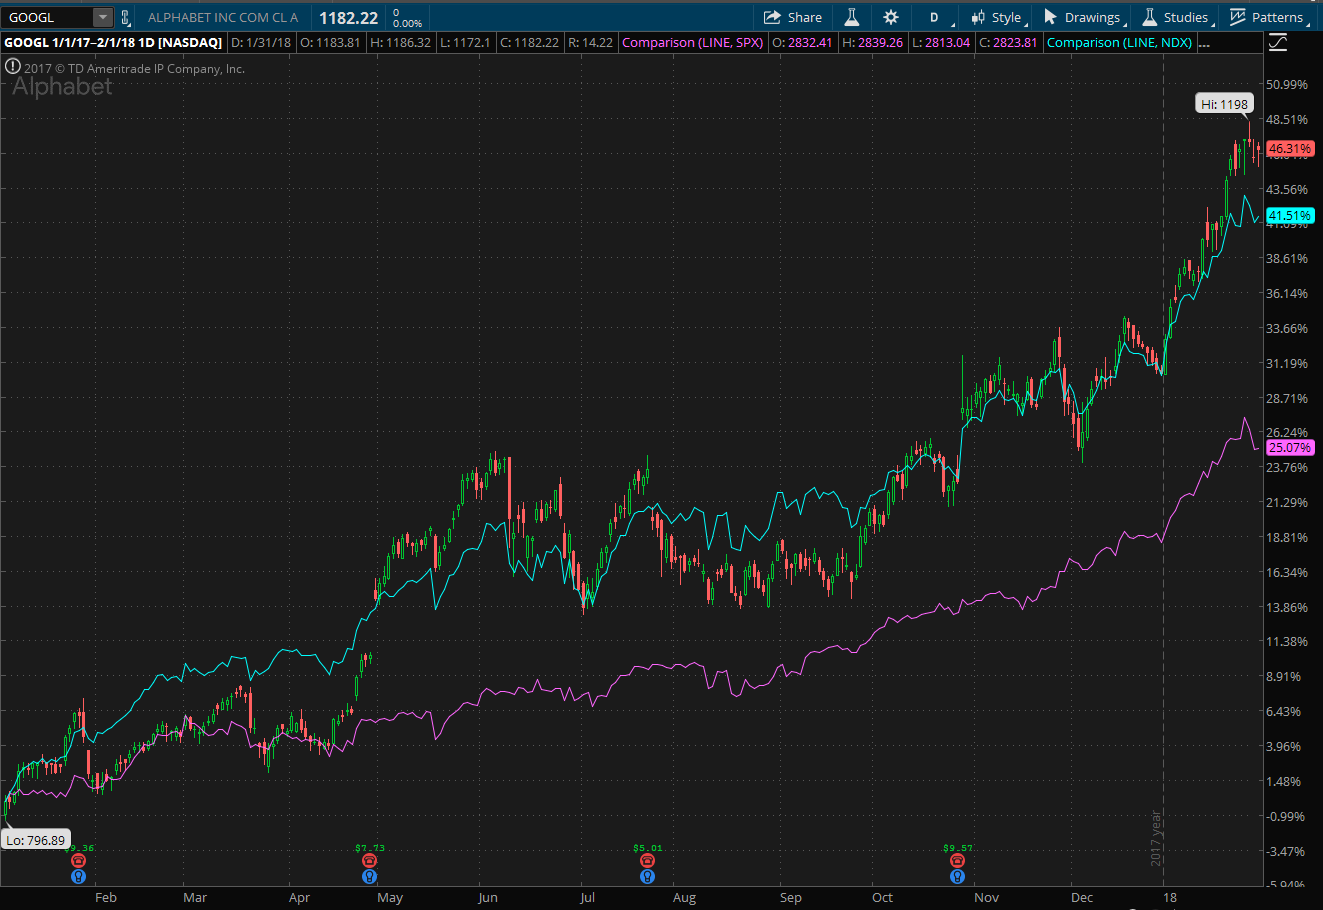 Alphabet (GOOGL) stock chart showing performance since start of 2017 compared to Nasdaq 100 and S&P 500